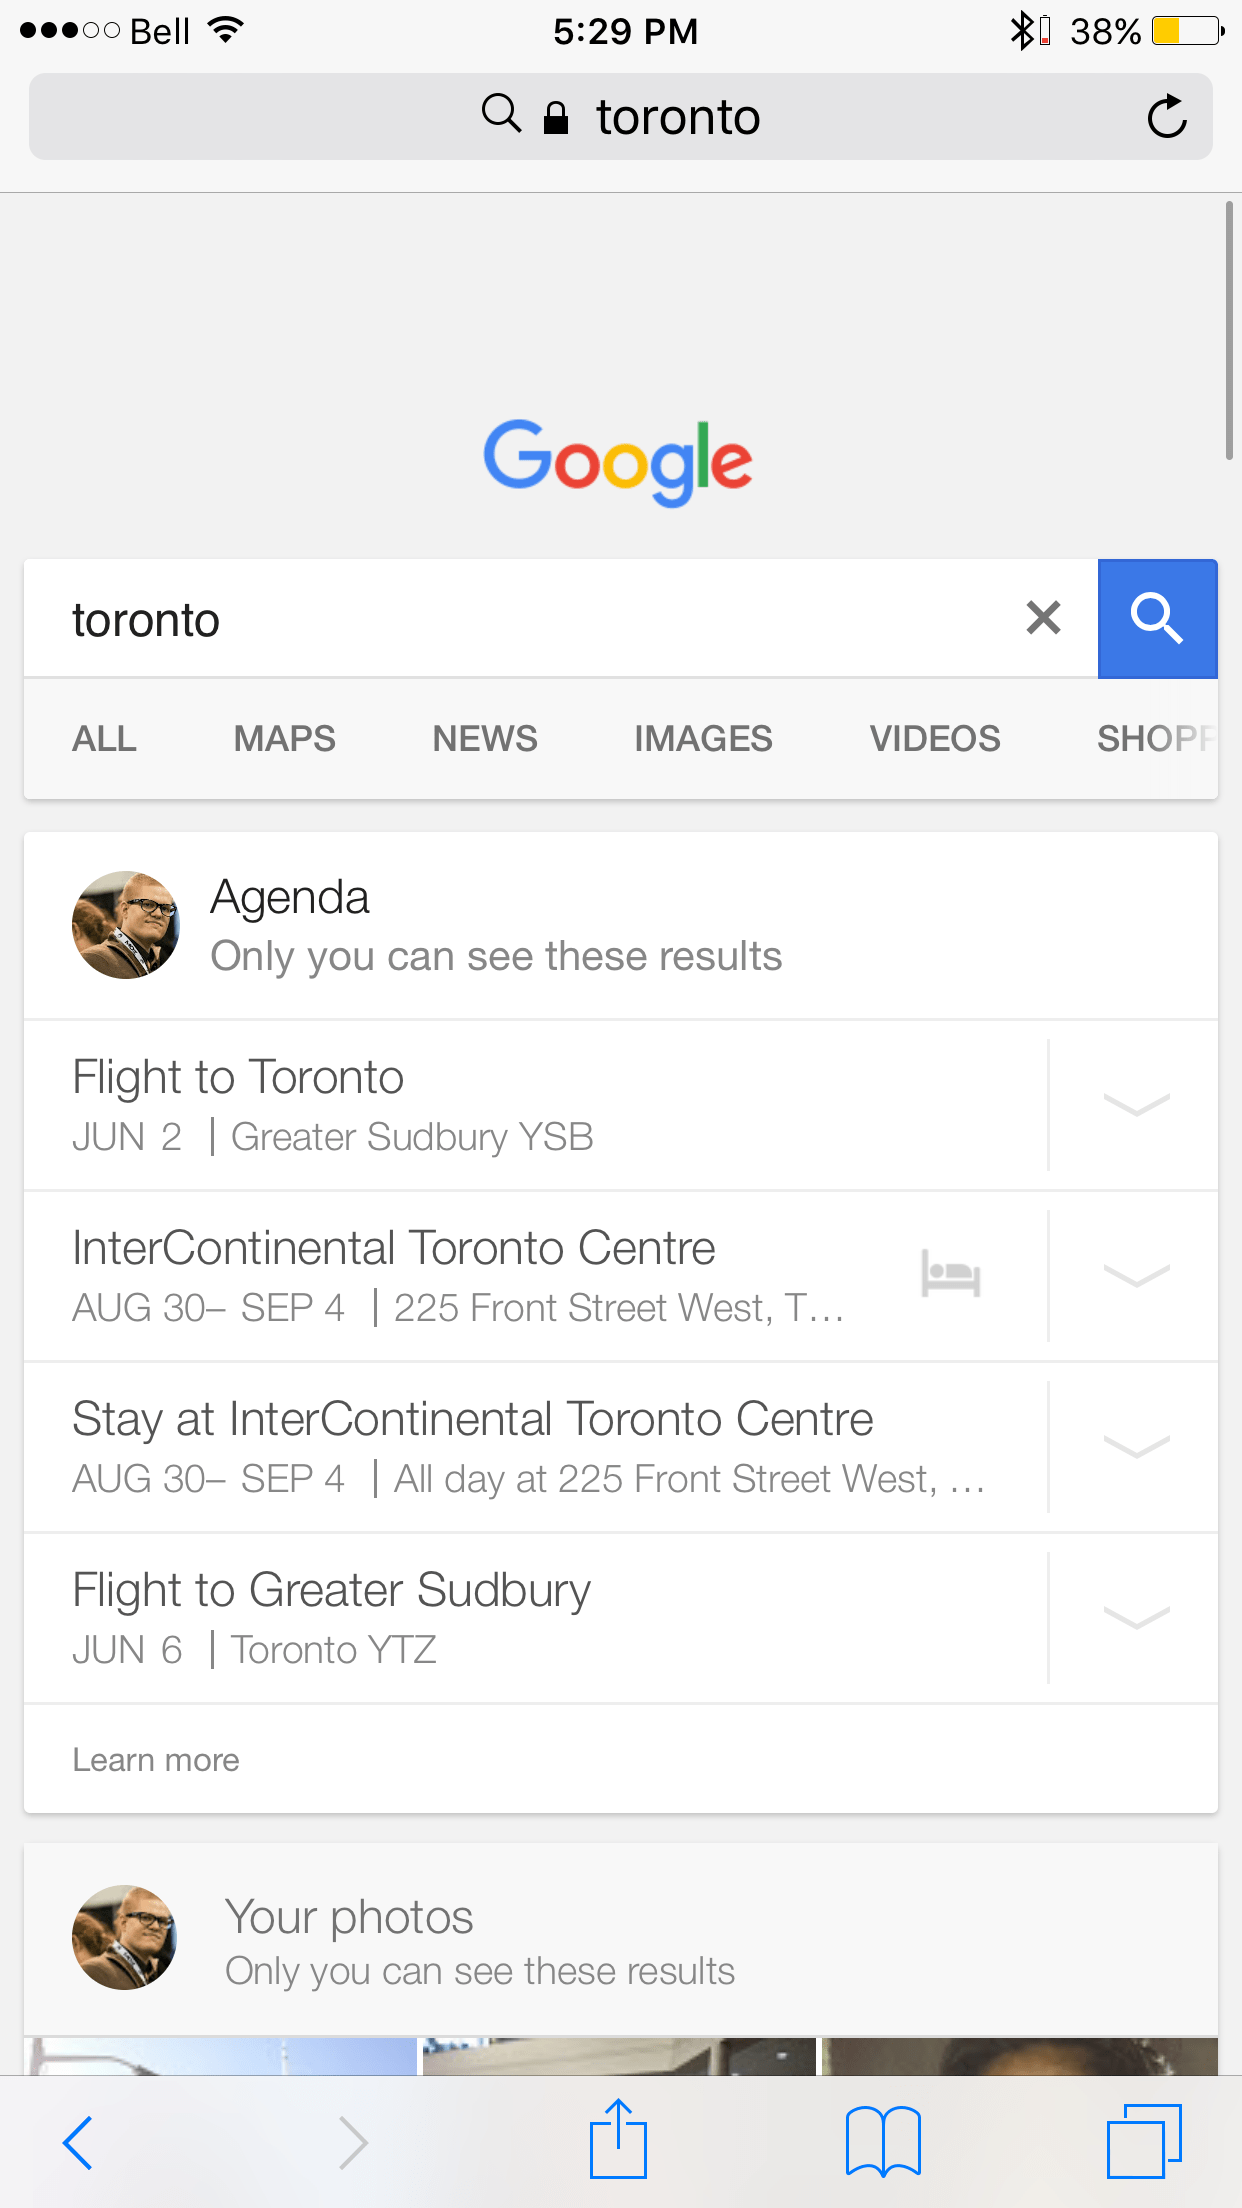 Google Adds 'Personal' Tab to Search Results